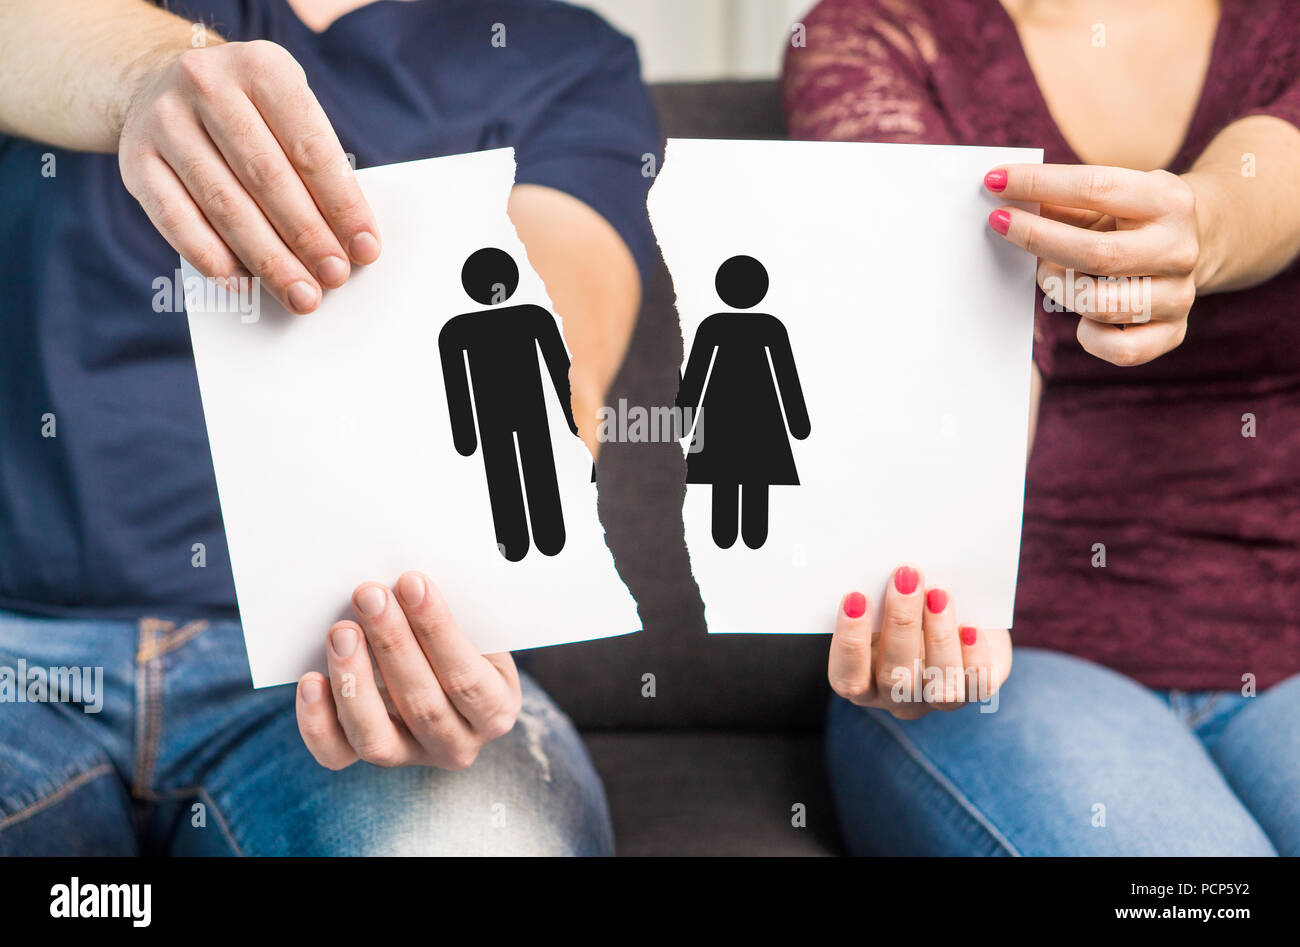 Break up, divorce and marital problems concept. Couple holding ripped pieces of paper with man and woman symbol. - Stock Image